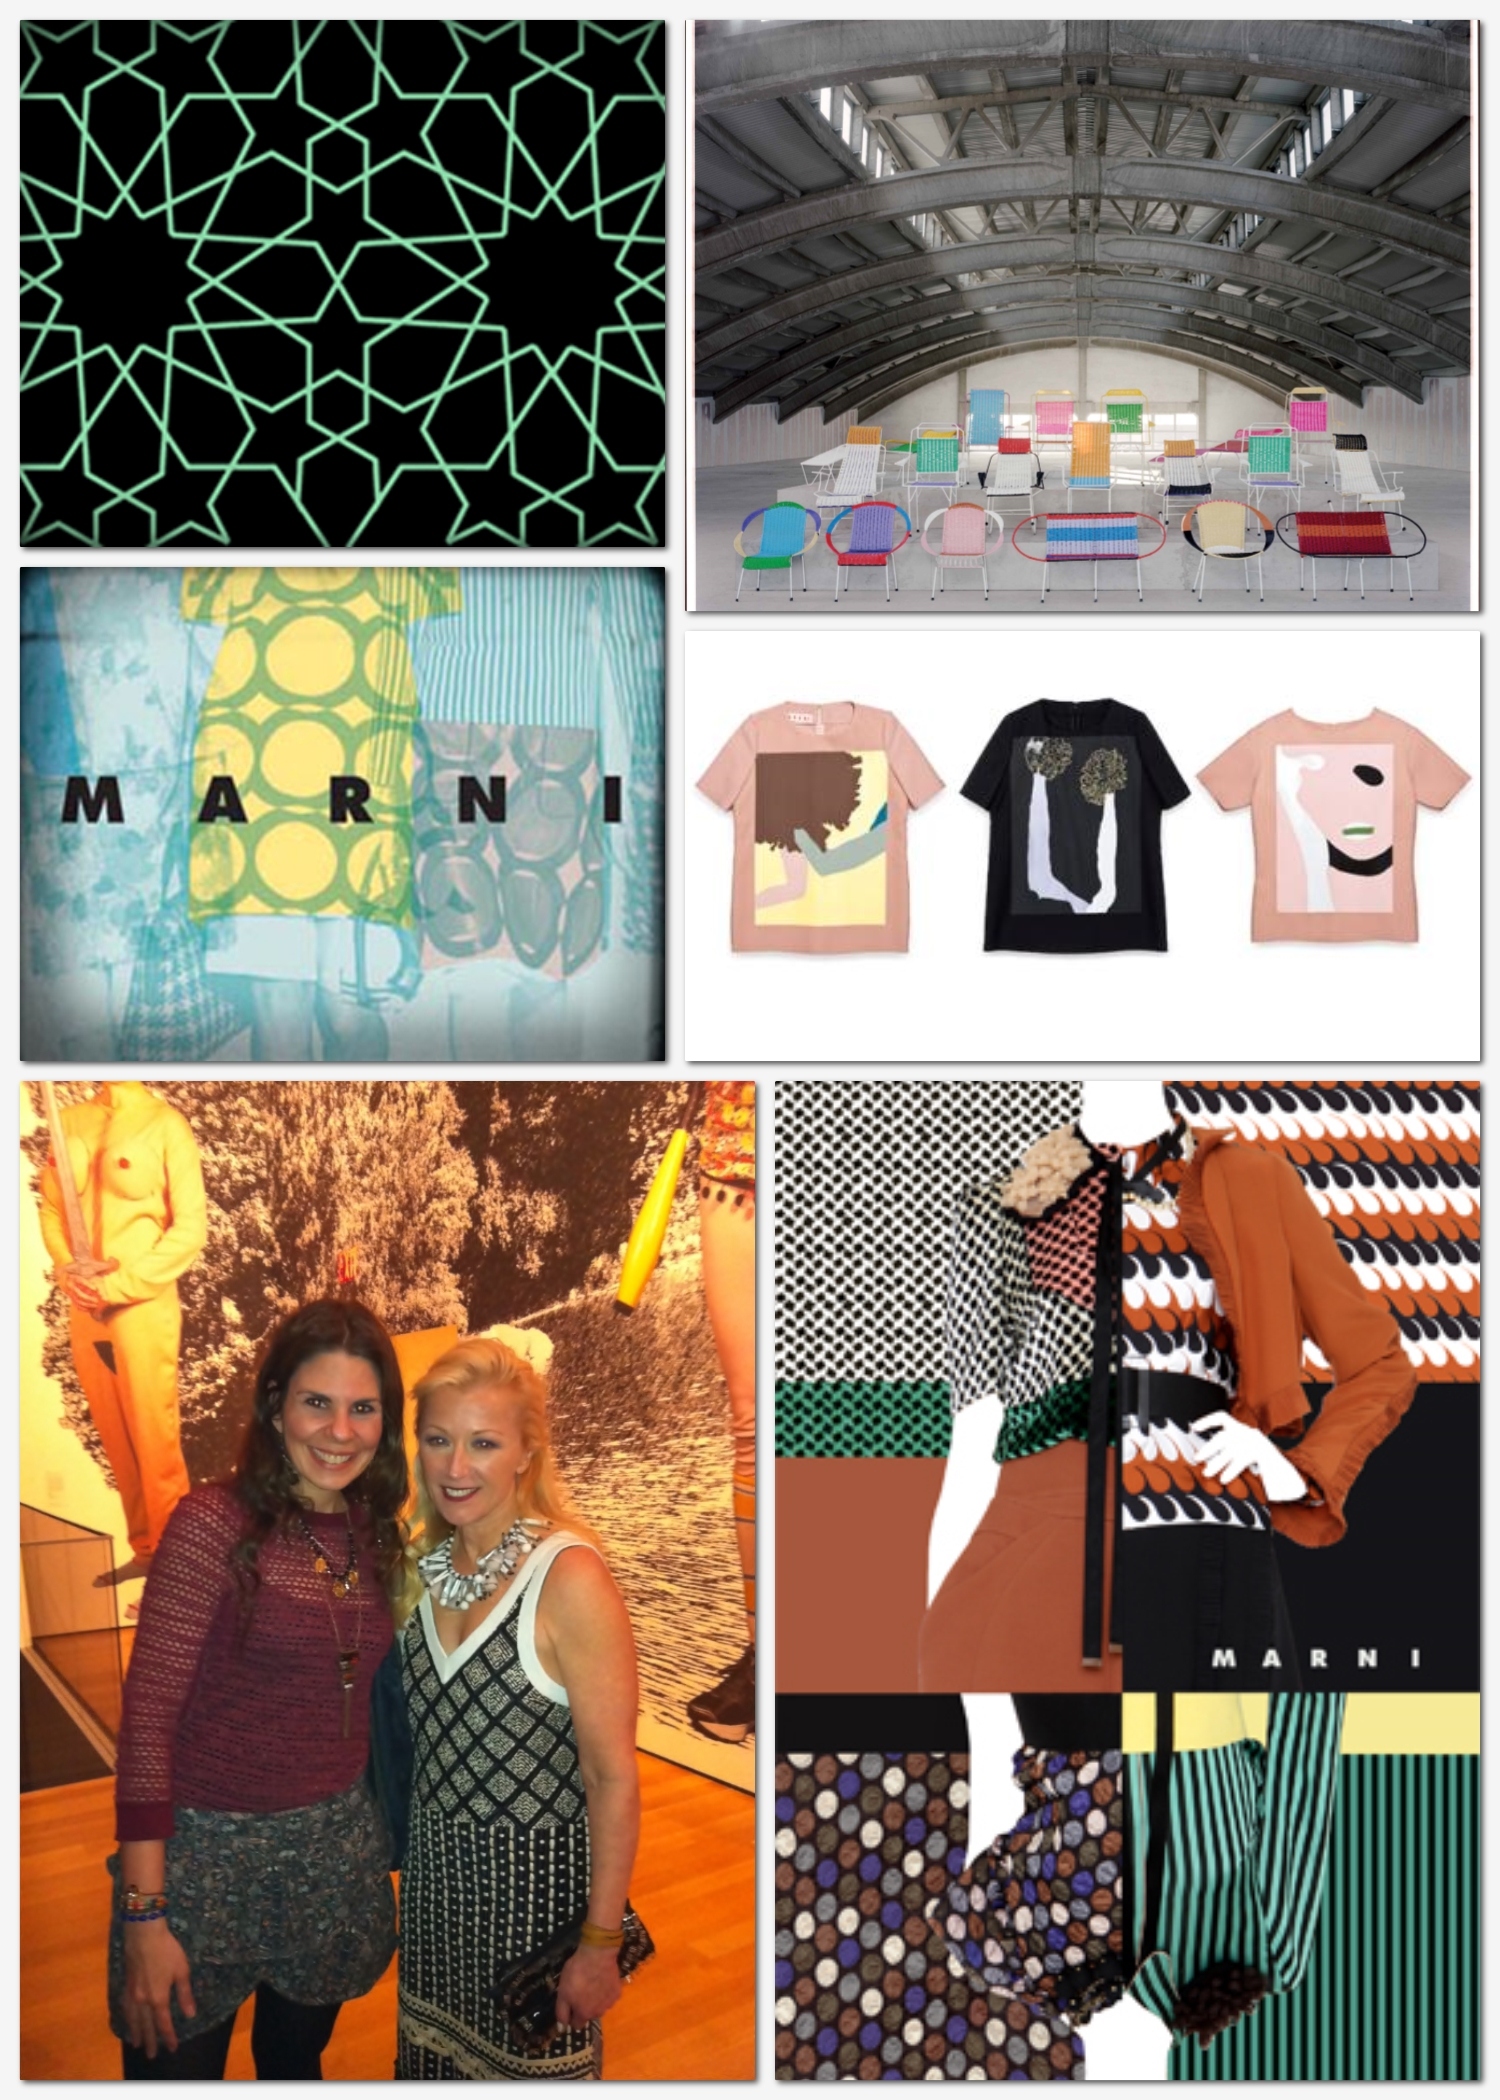 From top left clockwise: Marni patterns; Marni chair exhibition during Art Basel Miami Beach 2013, Marni postcard; Gary Hume x Marni T-Shirt Collaboration; Cindy Sherman wearing Marni at the opening of her solo show at MoMA in 2012; Marni spring 2013